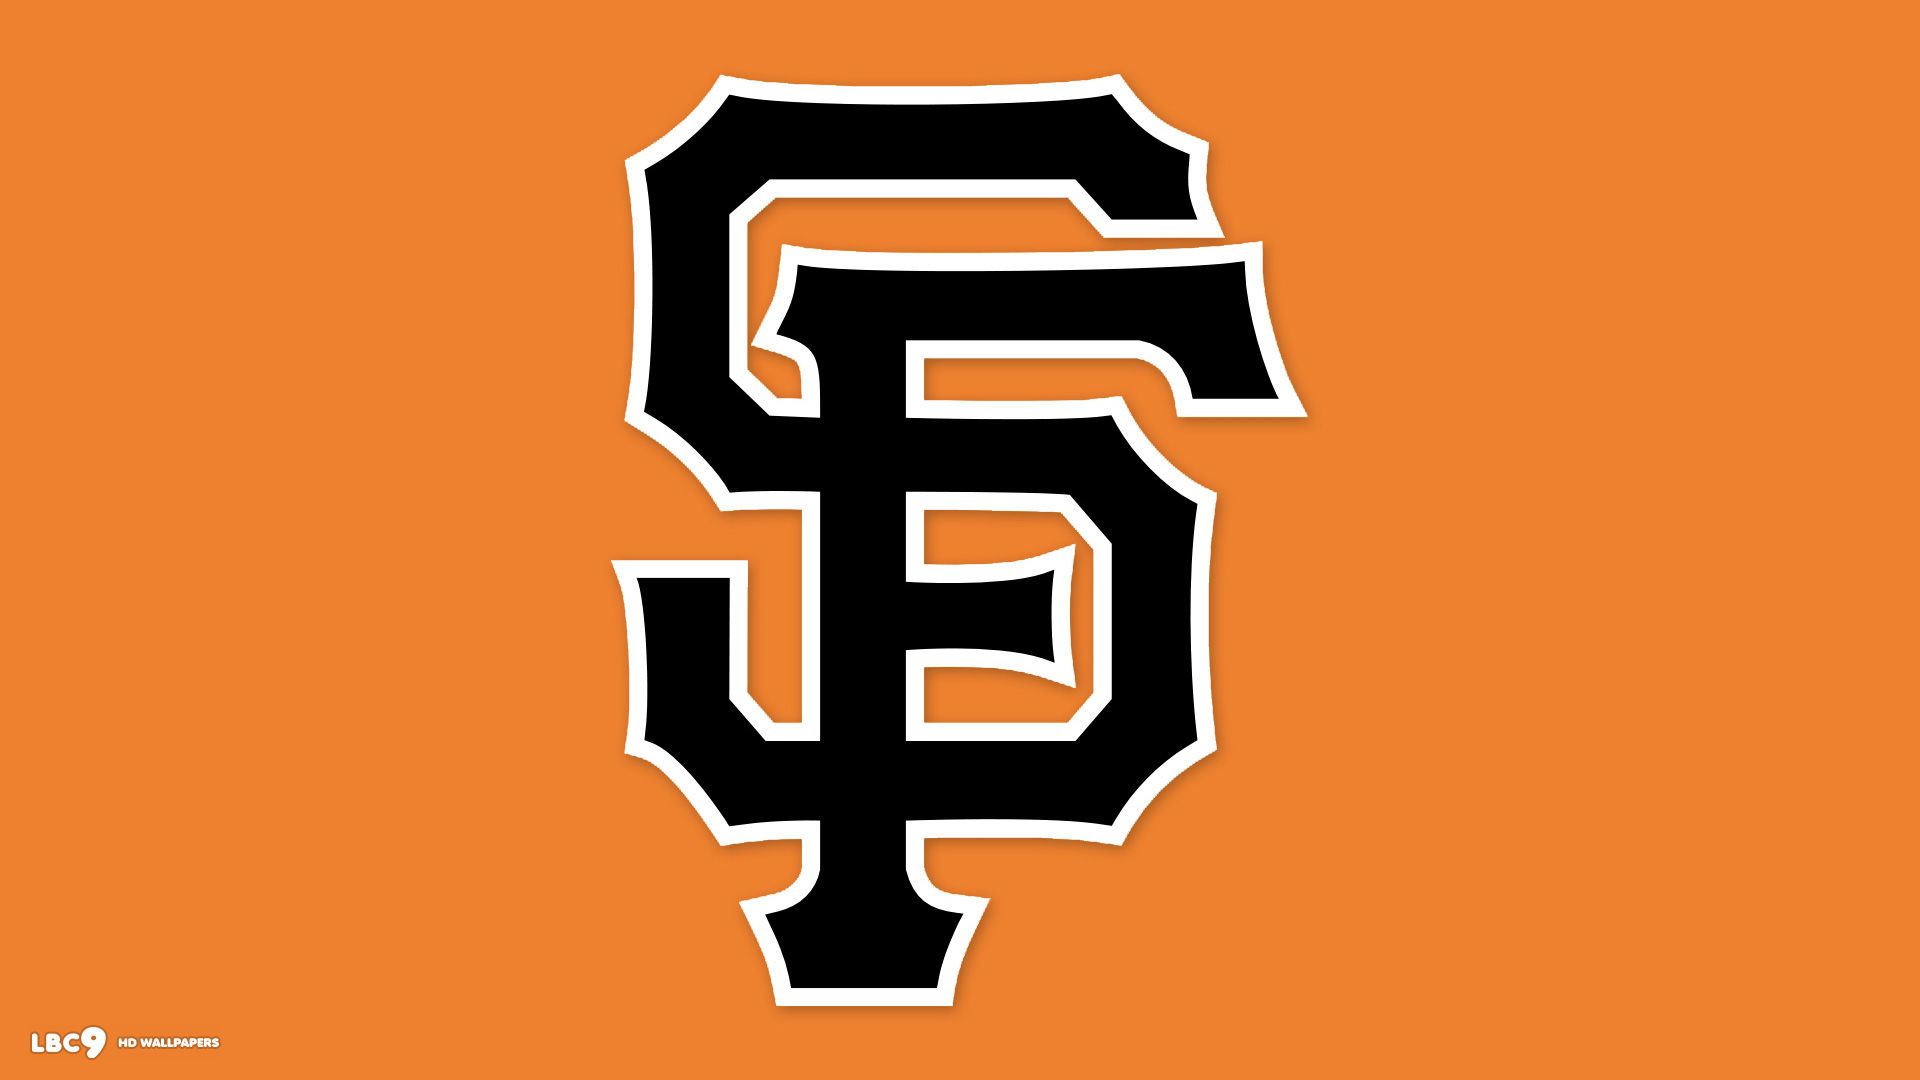 San Francisco Giants Wallpaper 12 Mlb Teams Hd Backgrounds 1920x1080